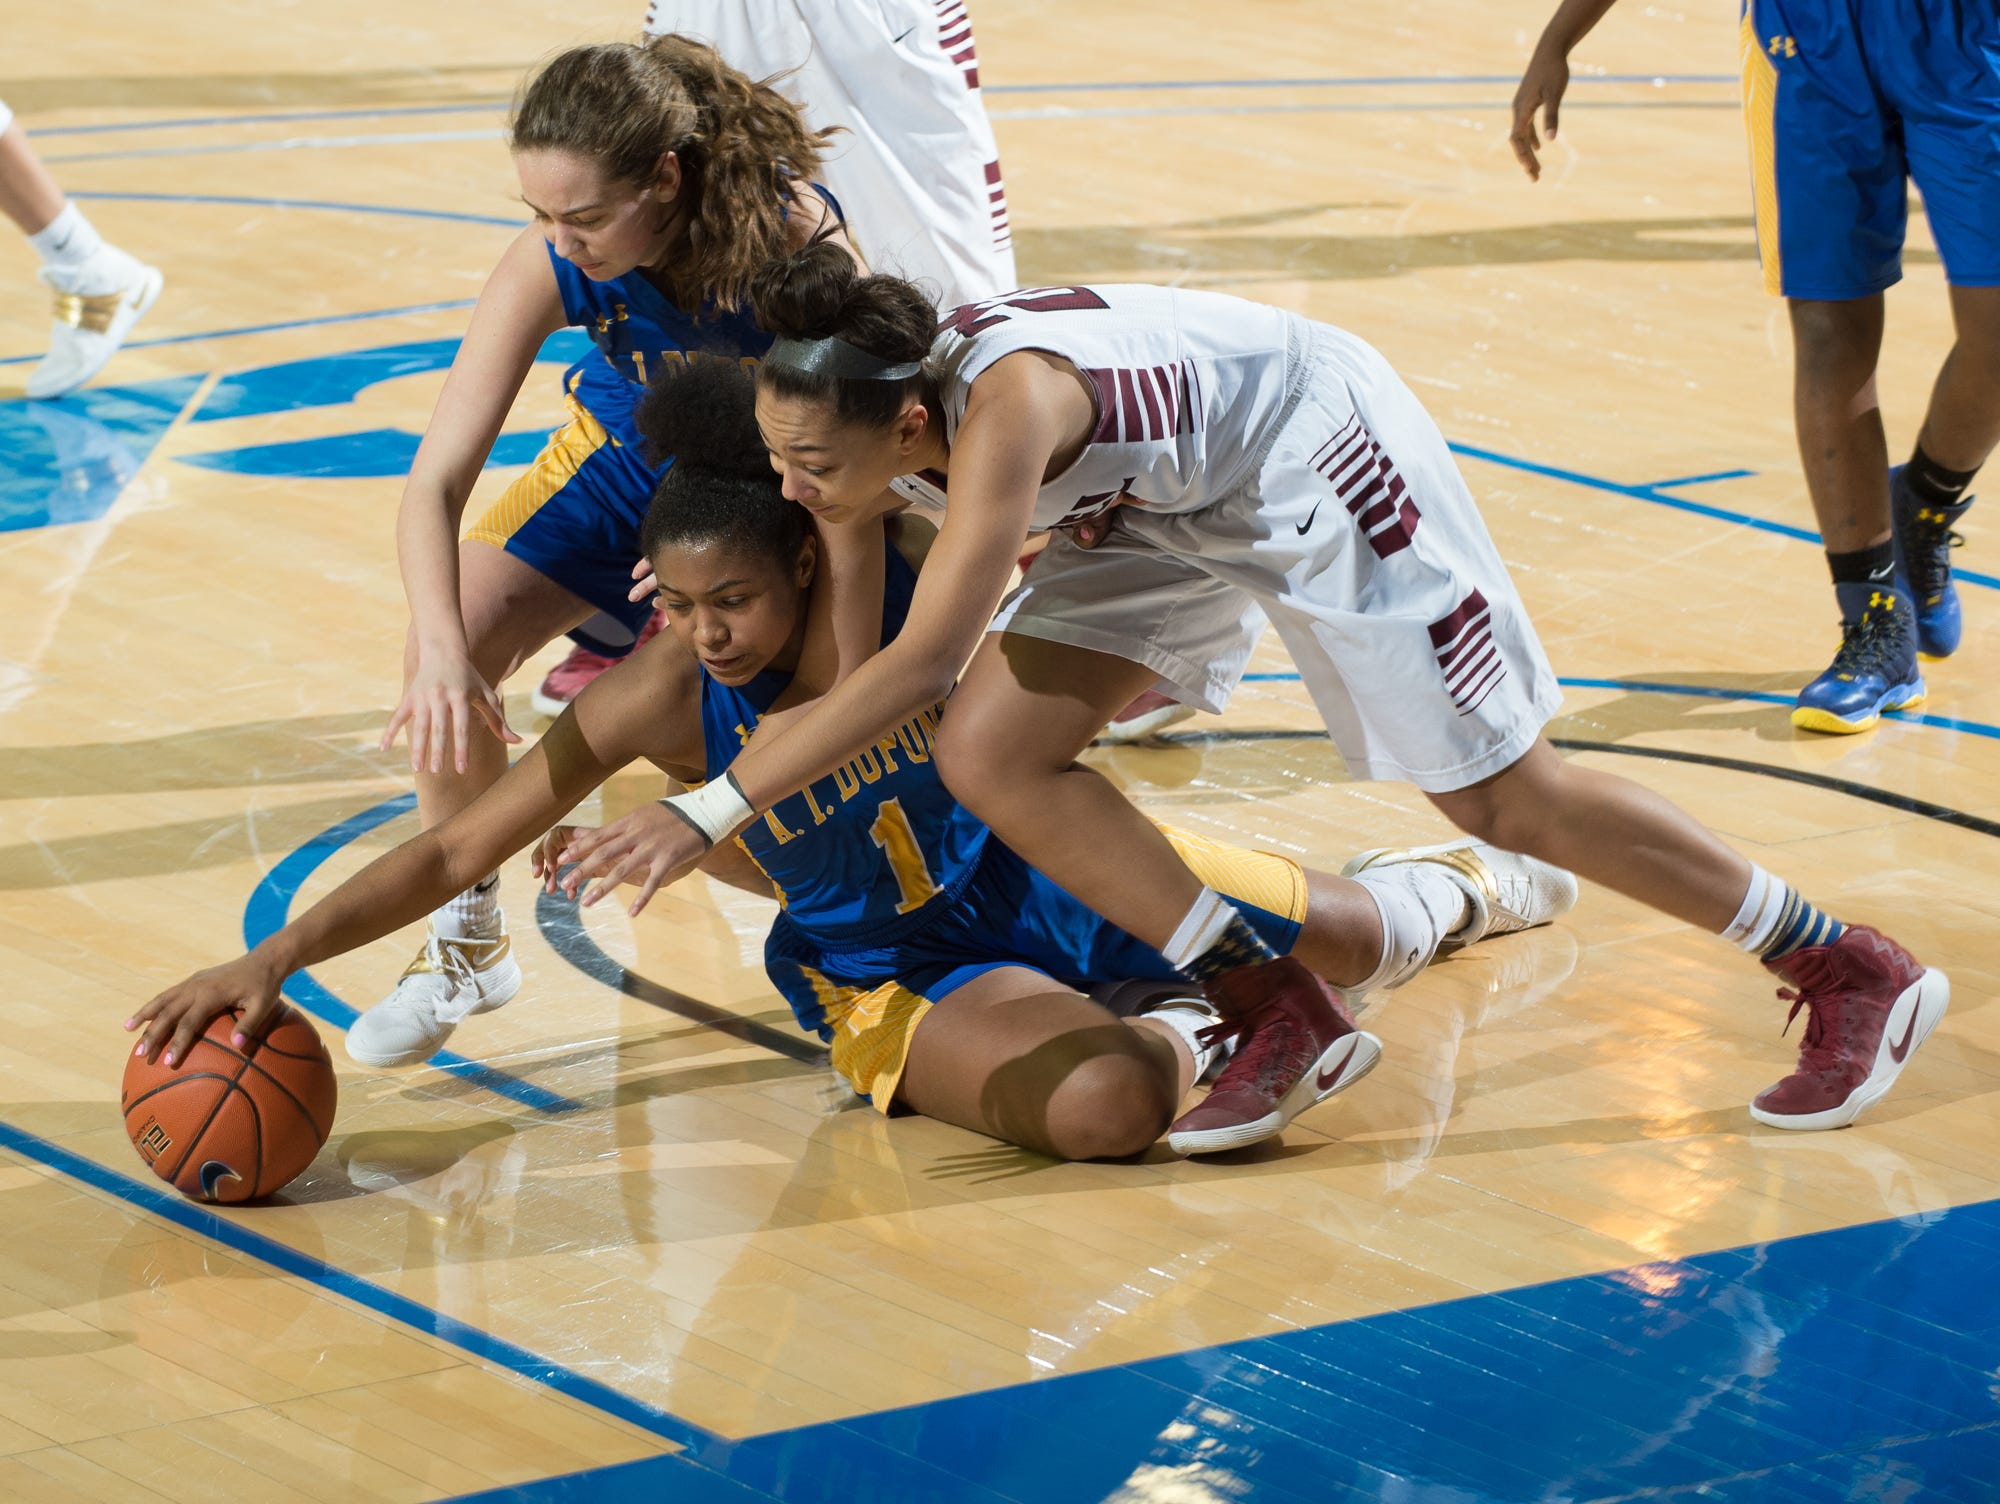 A.I. duPont's Alexandria Ferrell (1) gets her hand of a loose ball in the quarterfinals of DIAA Girls Basketball Tournament at the University of Delaware against Caravel.